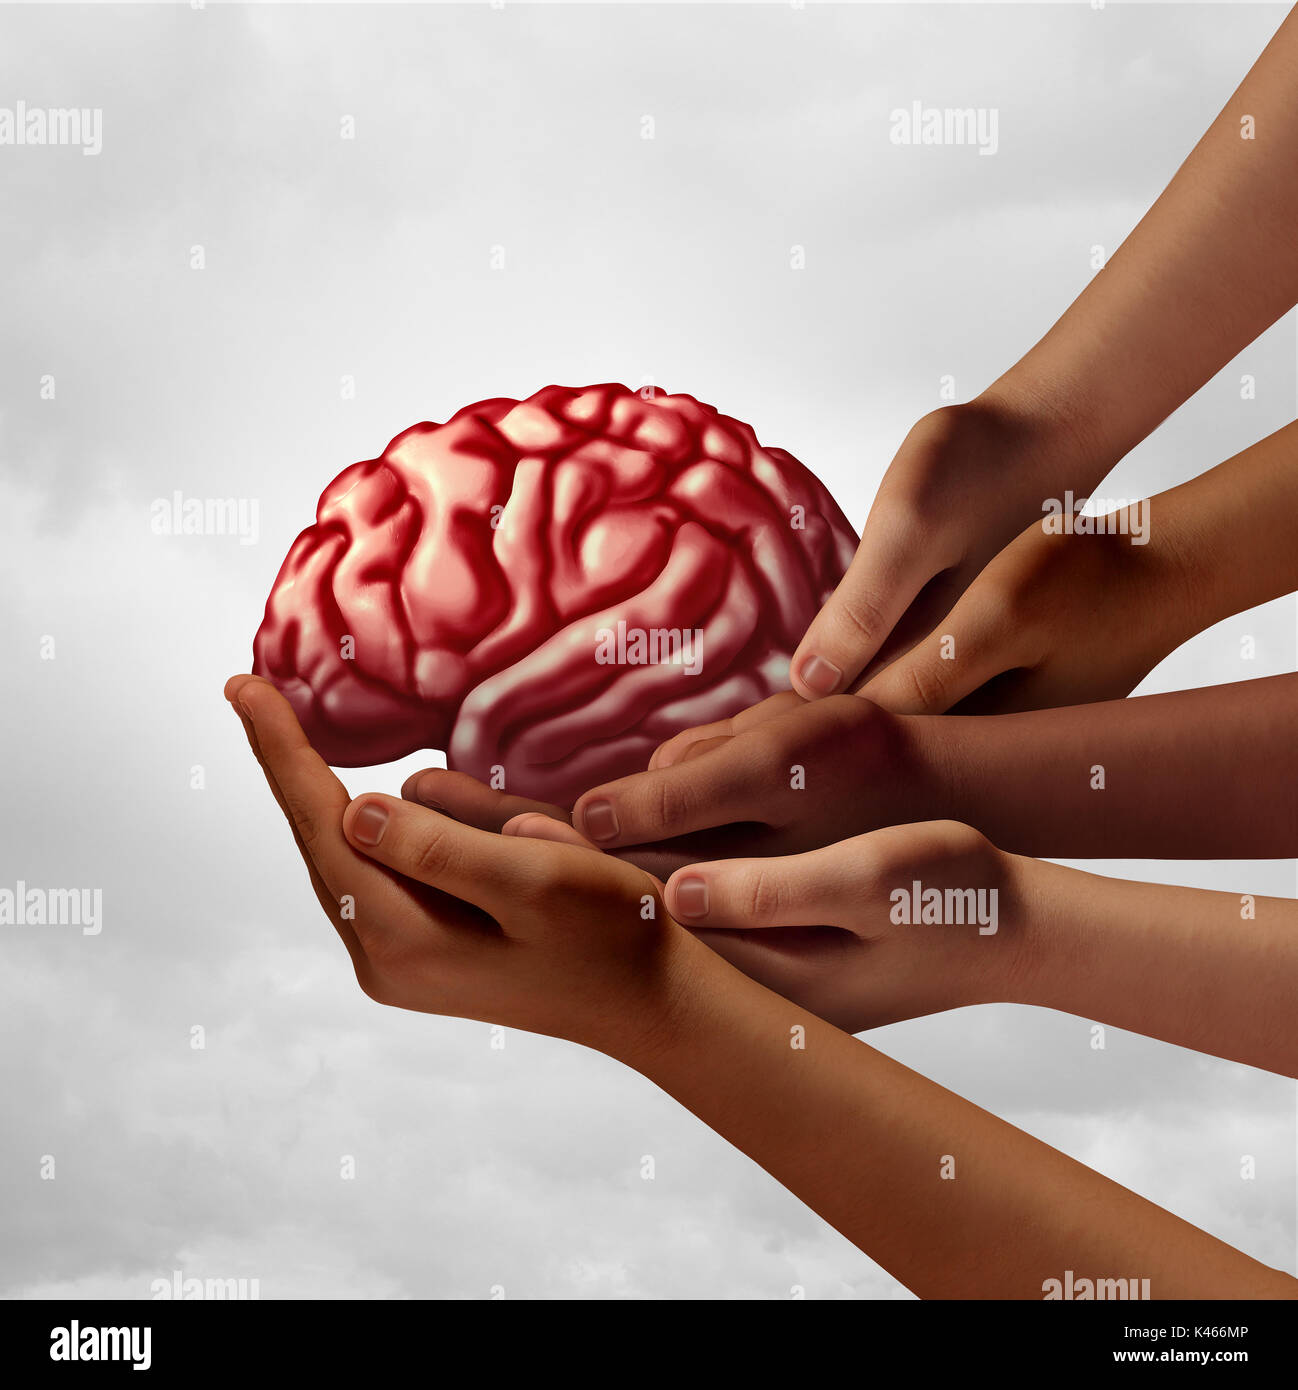 Neurology health group care as diverse hands holding a human brain as a team psychology metaphor with 3D illustration elements. - Stock Image